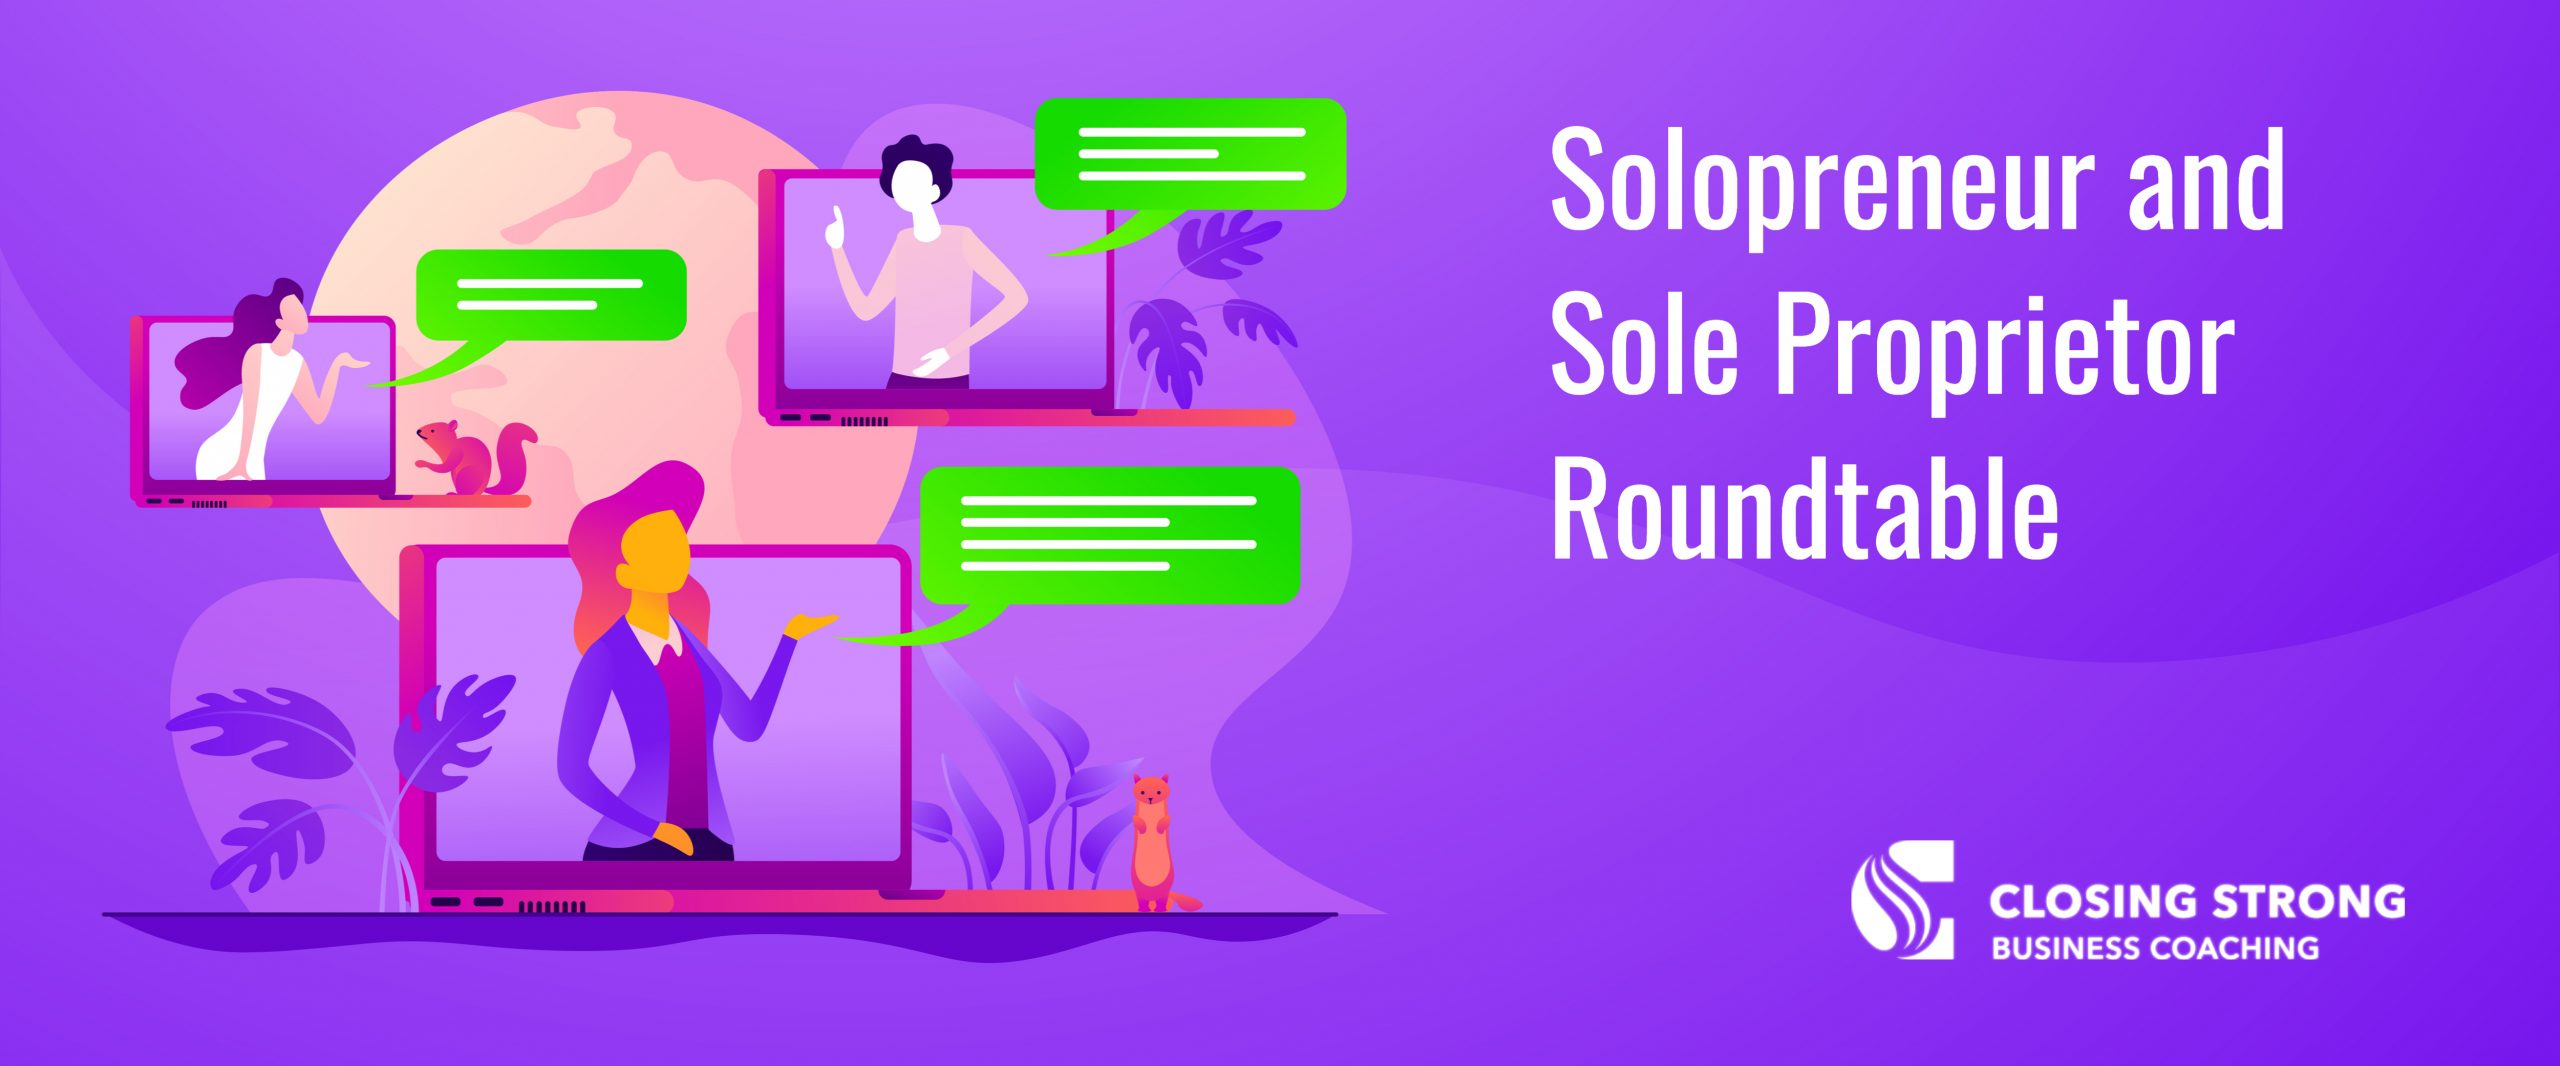 solopreneur-branding-scaled Solopreneur and Sole Proprietor Roundtable